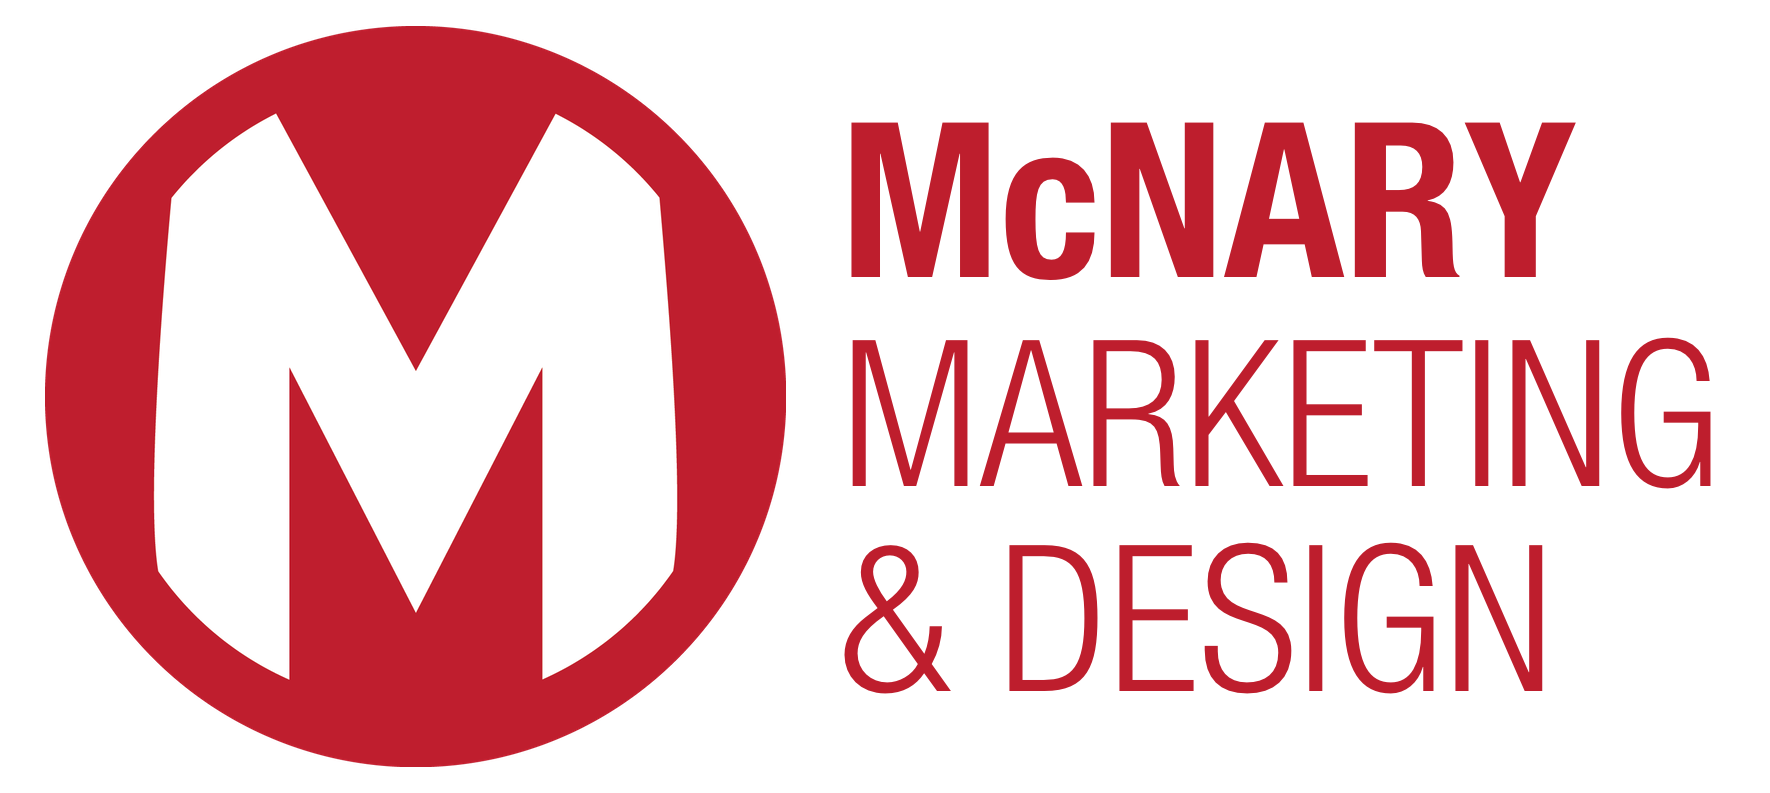 McNary Marketing & Design LLC